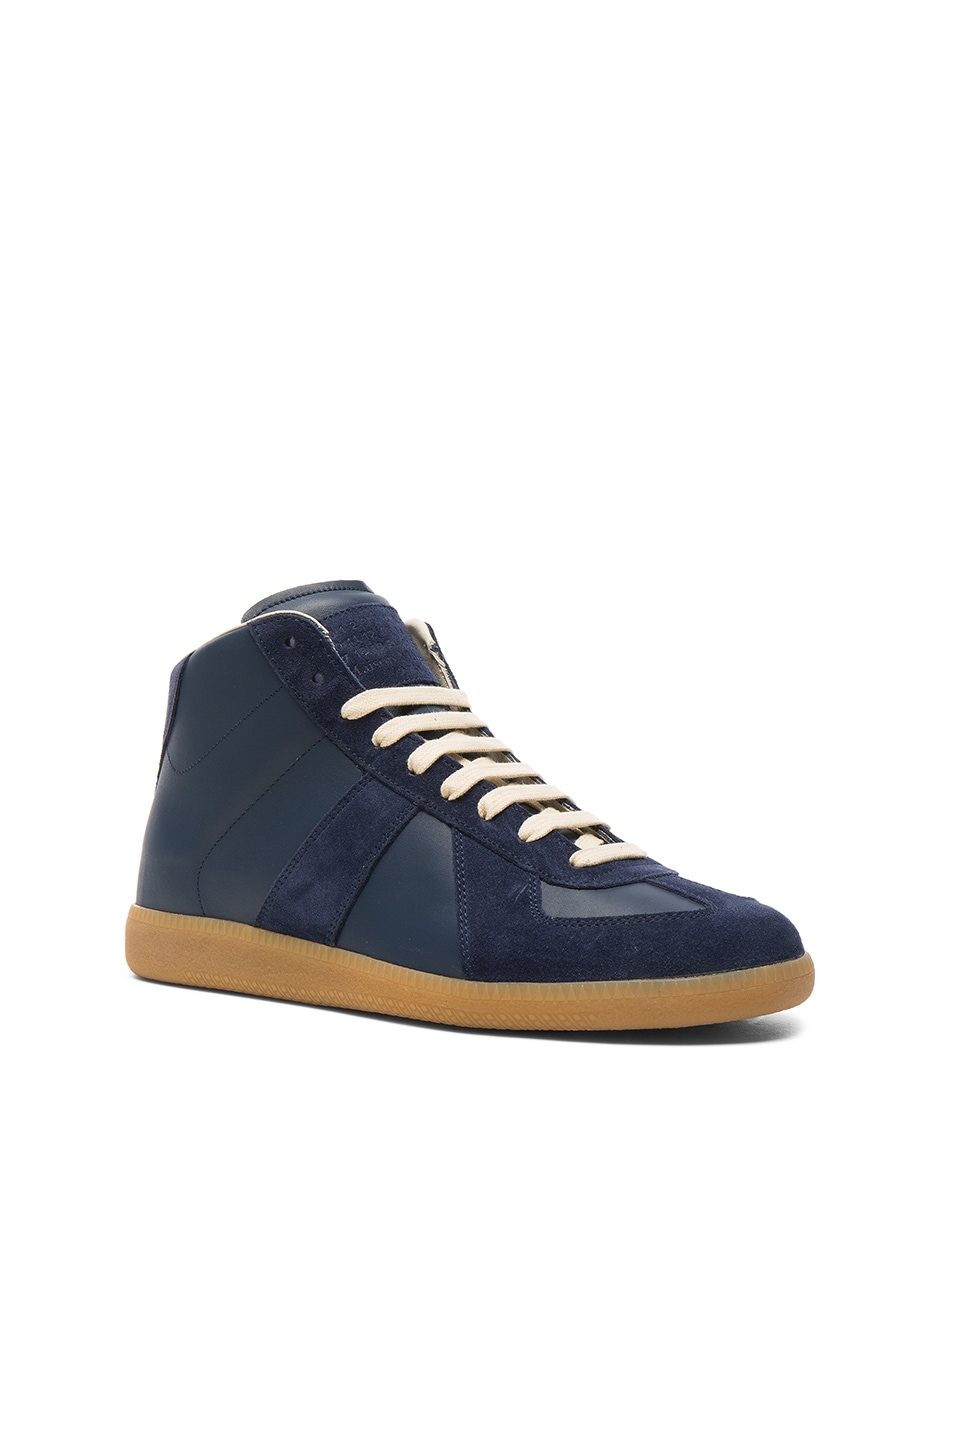 Maison MargielaReplica High-Top Leather Sneakers LVRgEq